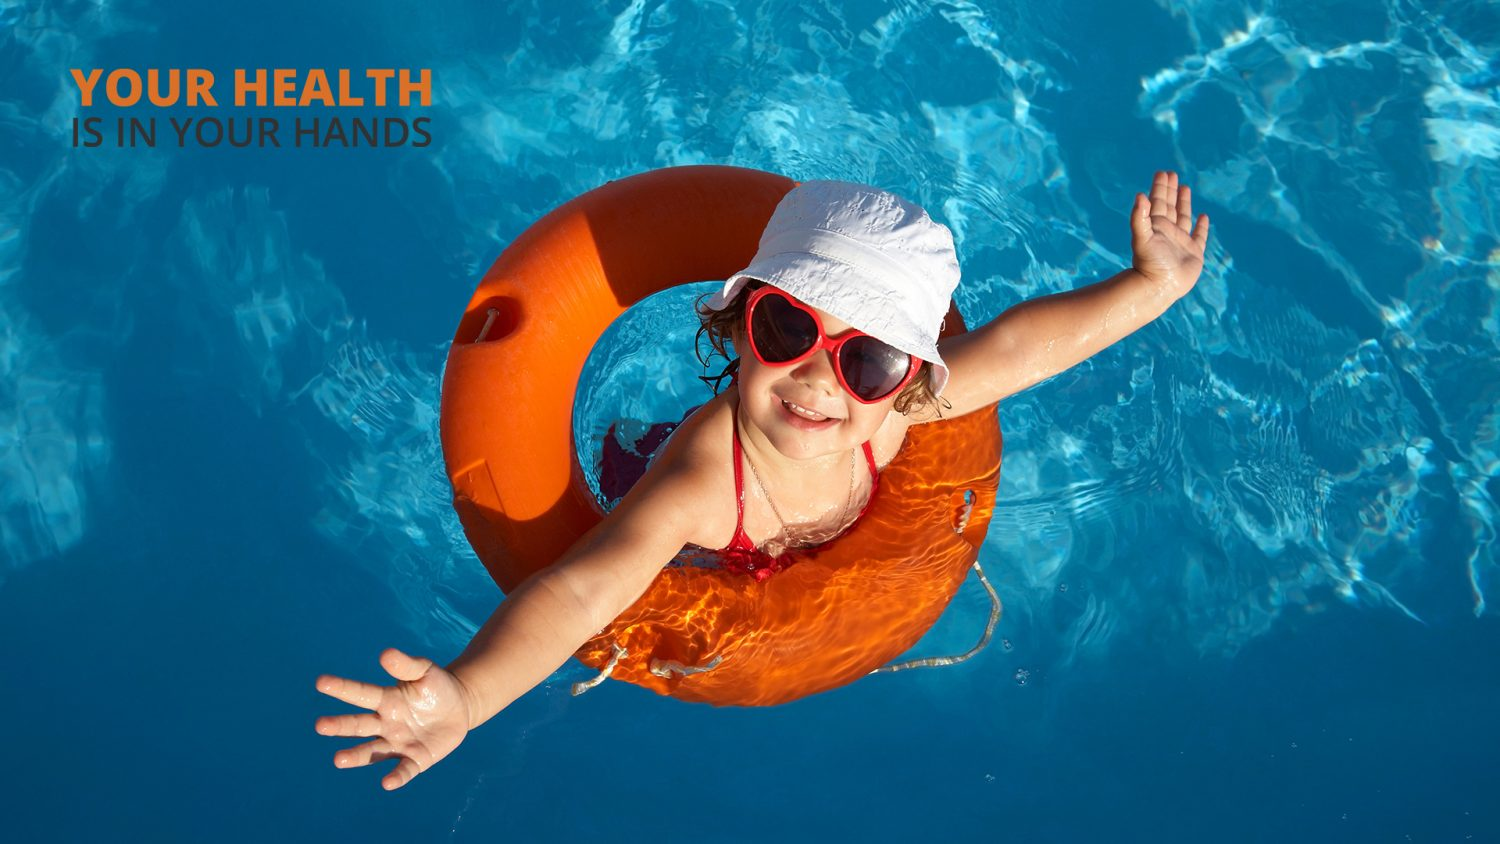 10 Tips for Summer Safety